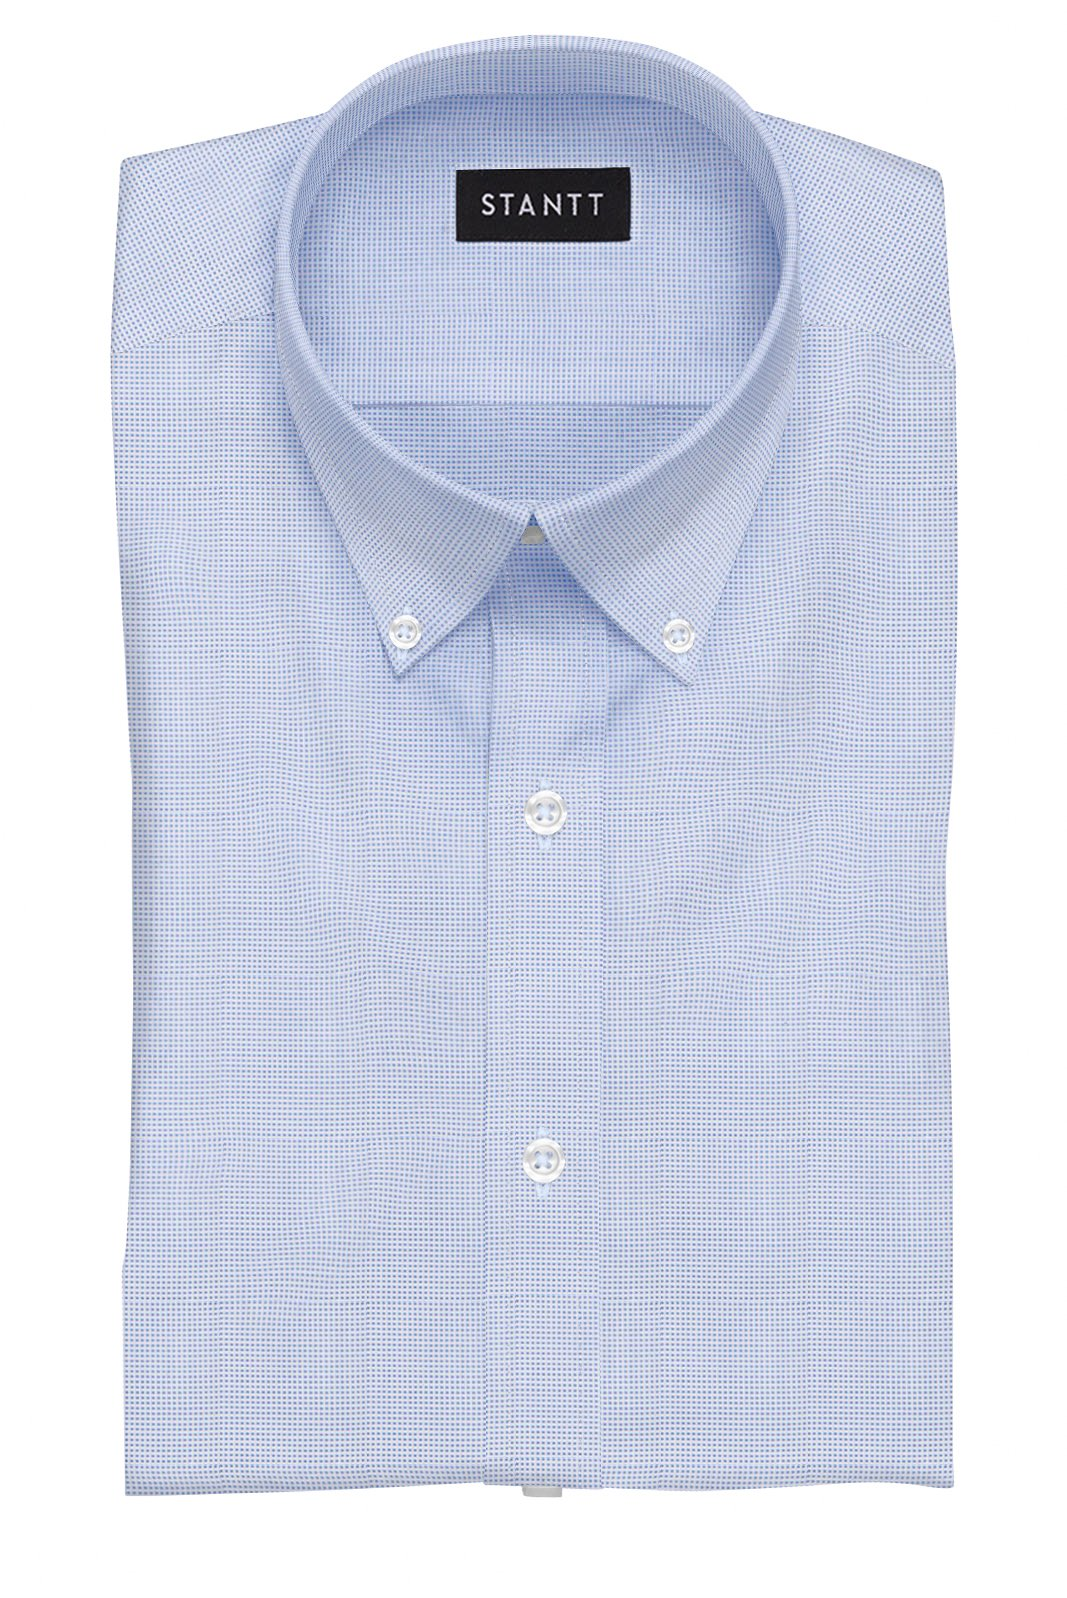 Blue Dobby: Button-Down Collar, Barrel Cuff